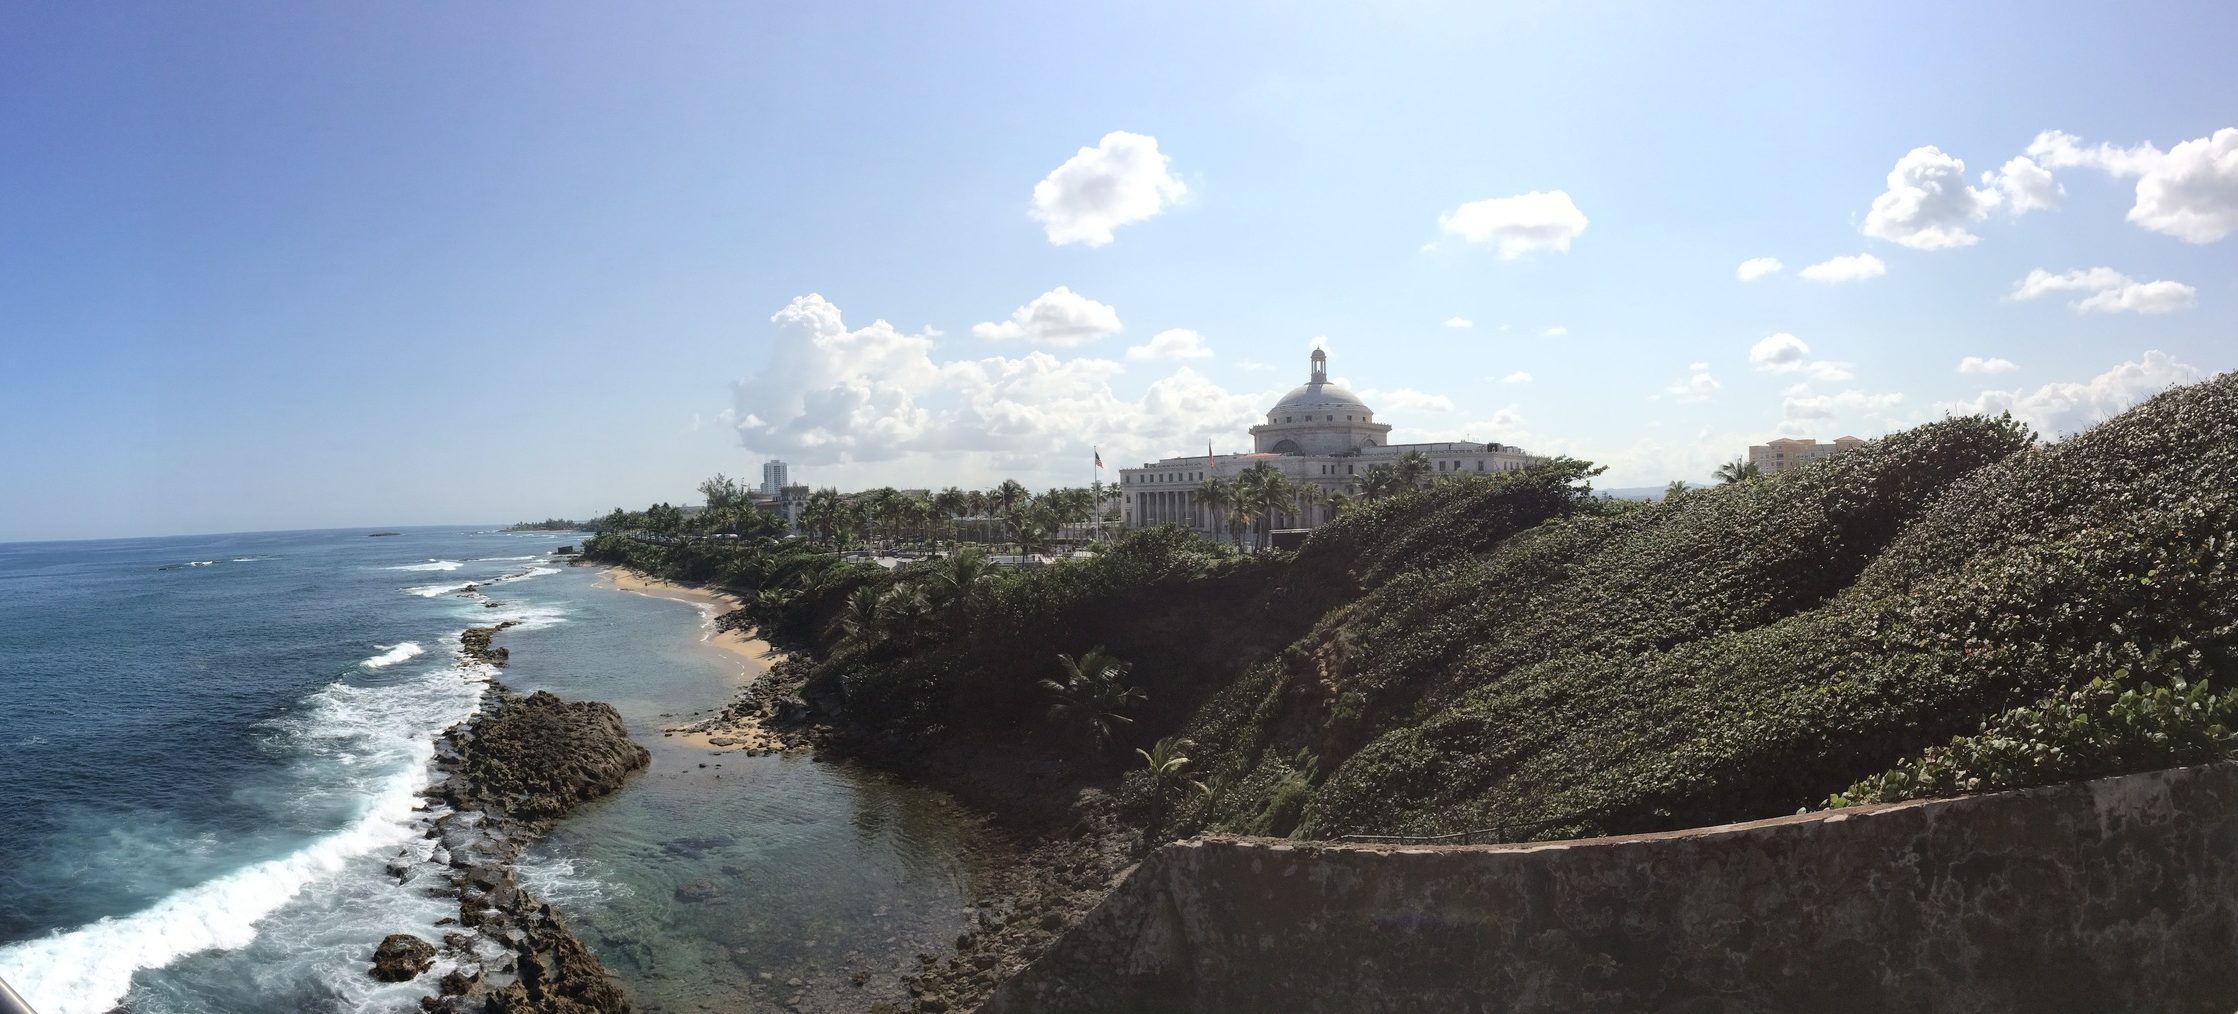 Puerto Rico - the view from the Castillo San Felipe del Morro